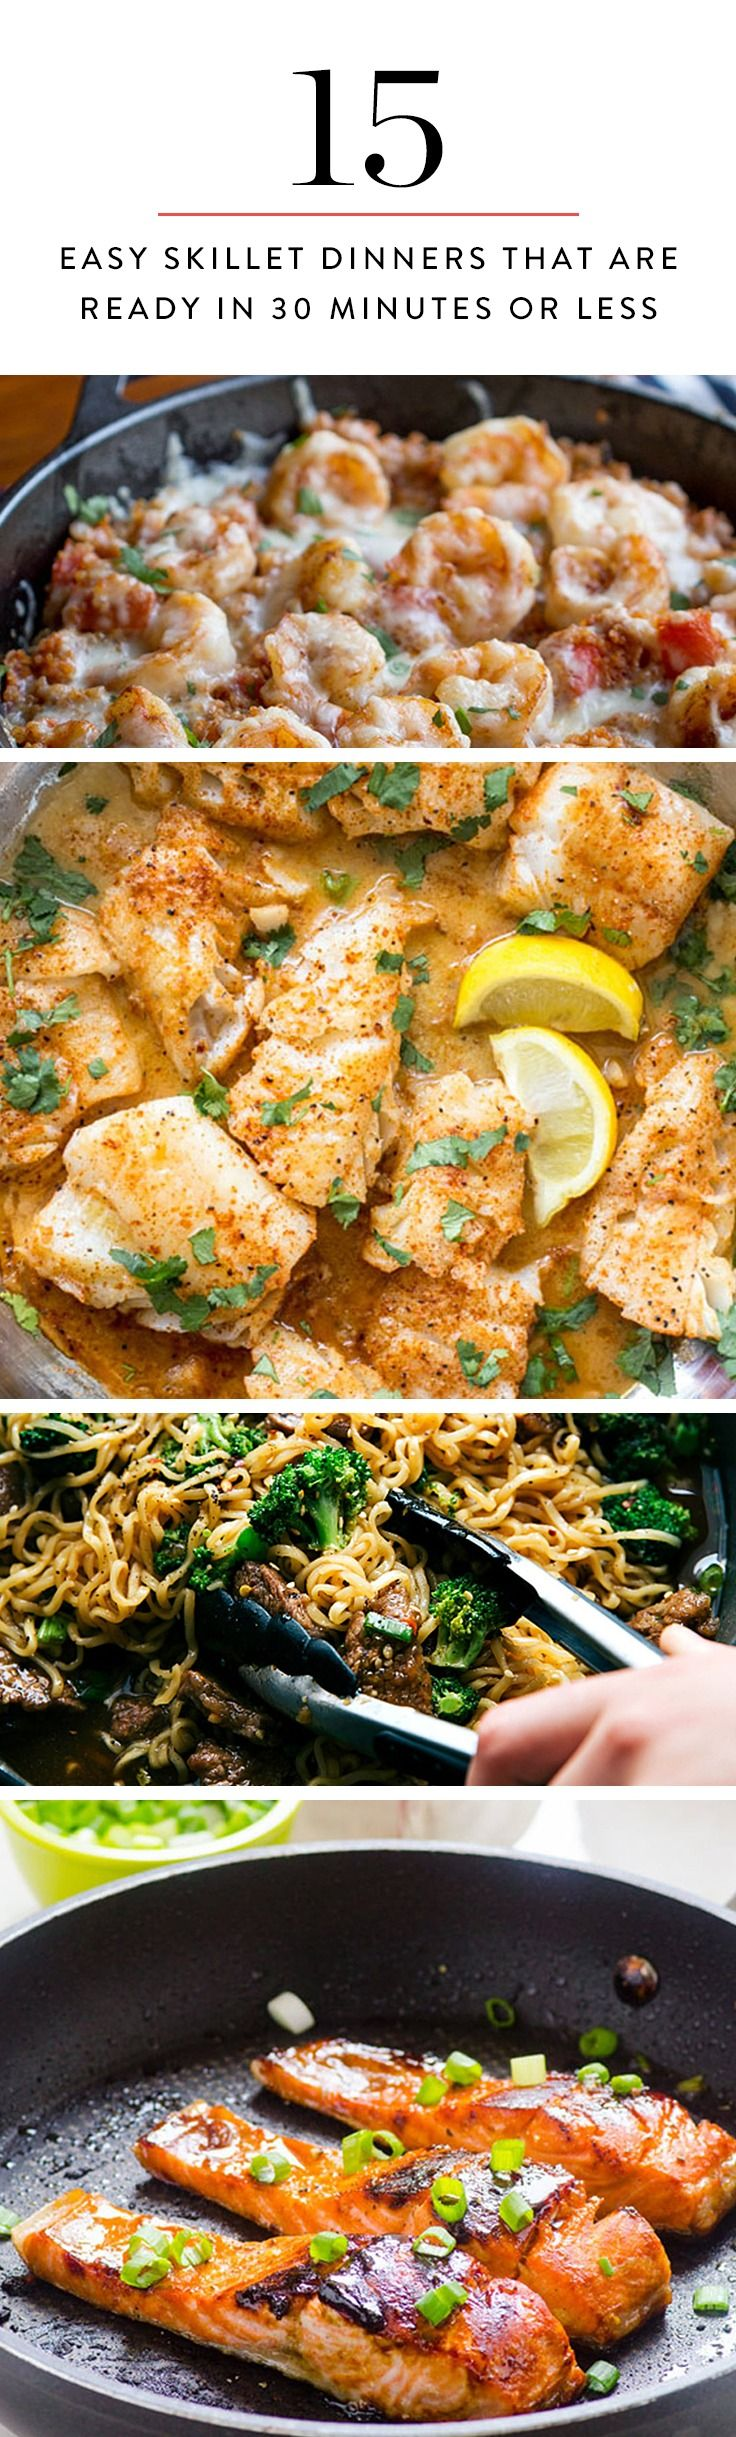 15 Easy Skillet Dinners That Are Ready in 30 Minutes or Less #skilletrecipes